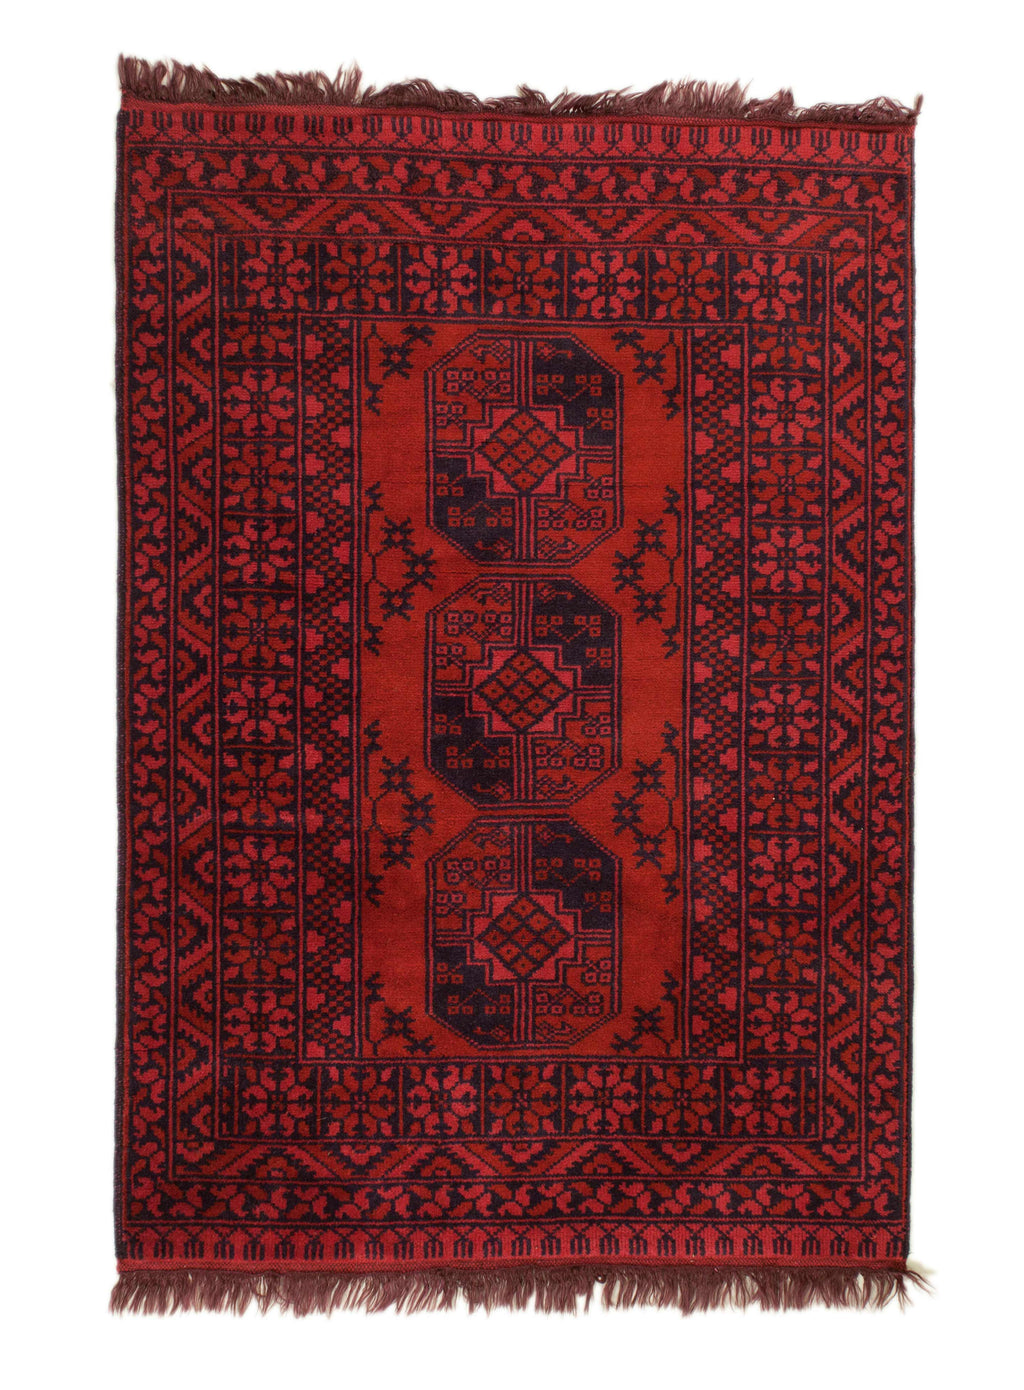 3x5 Overdyed Vintage Tribal Rug Red 2673 - west of hudson